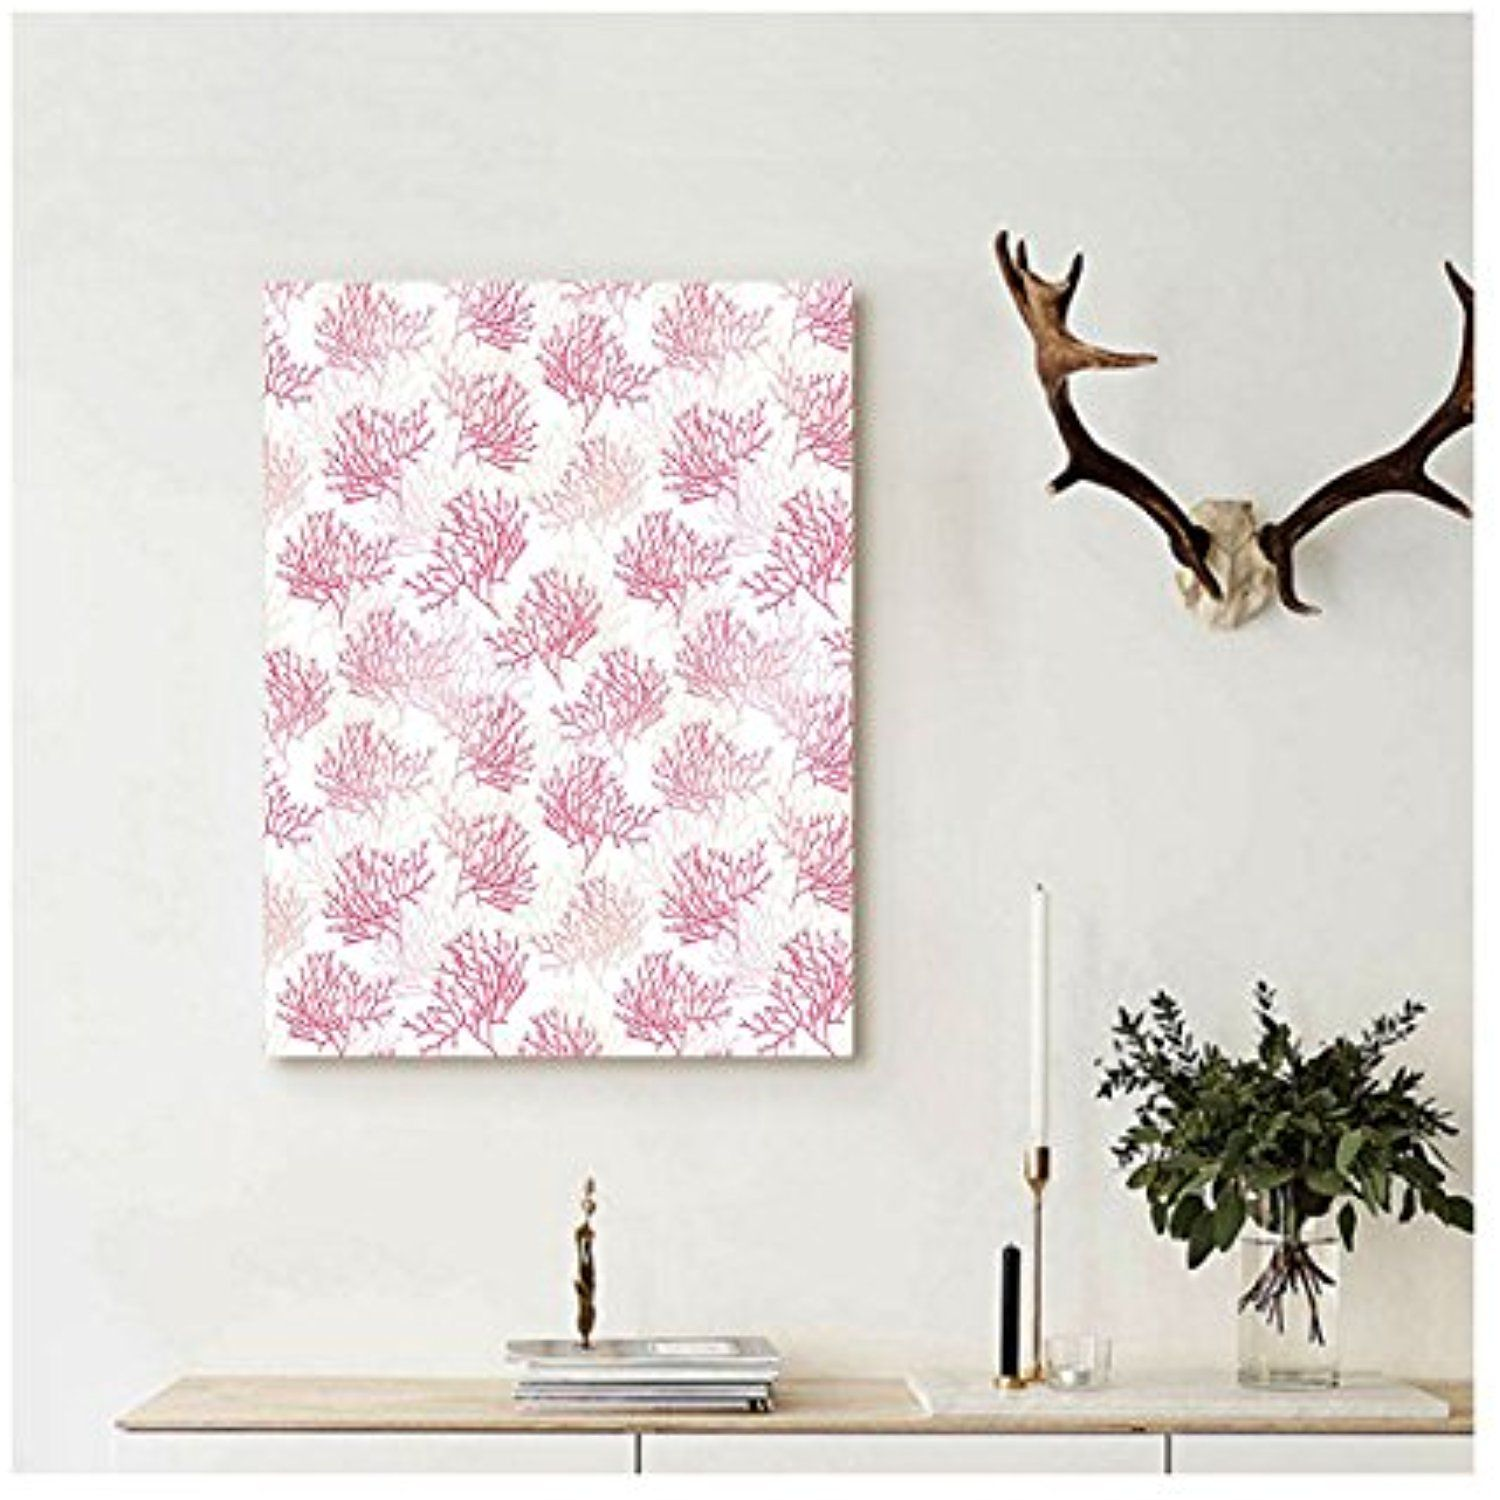 Liguo custom canvas coral decor shallow water elements with